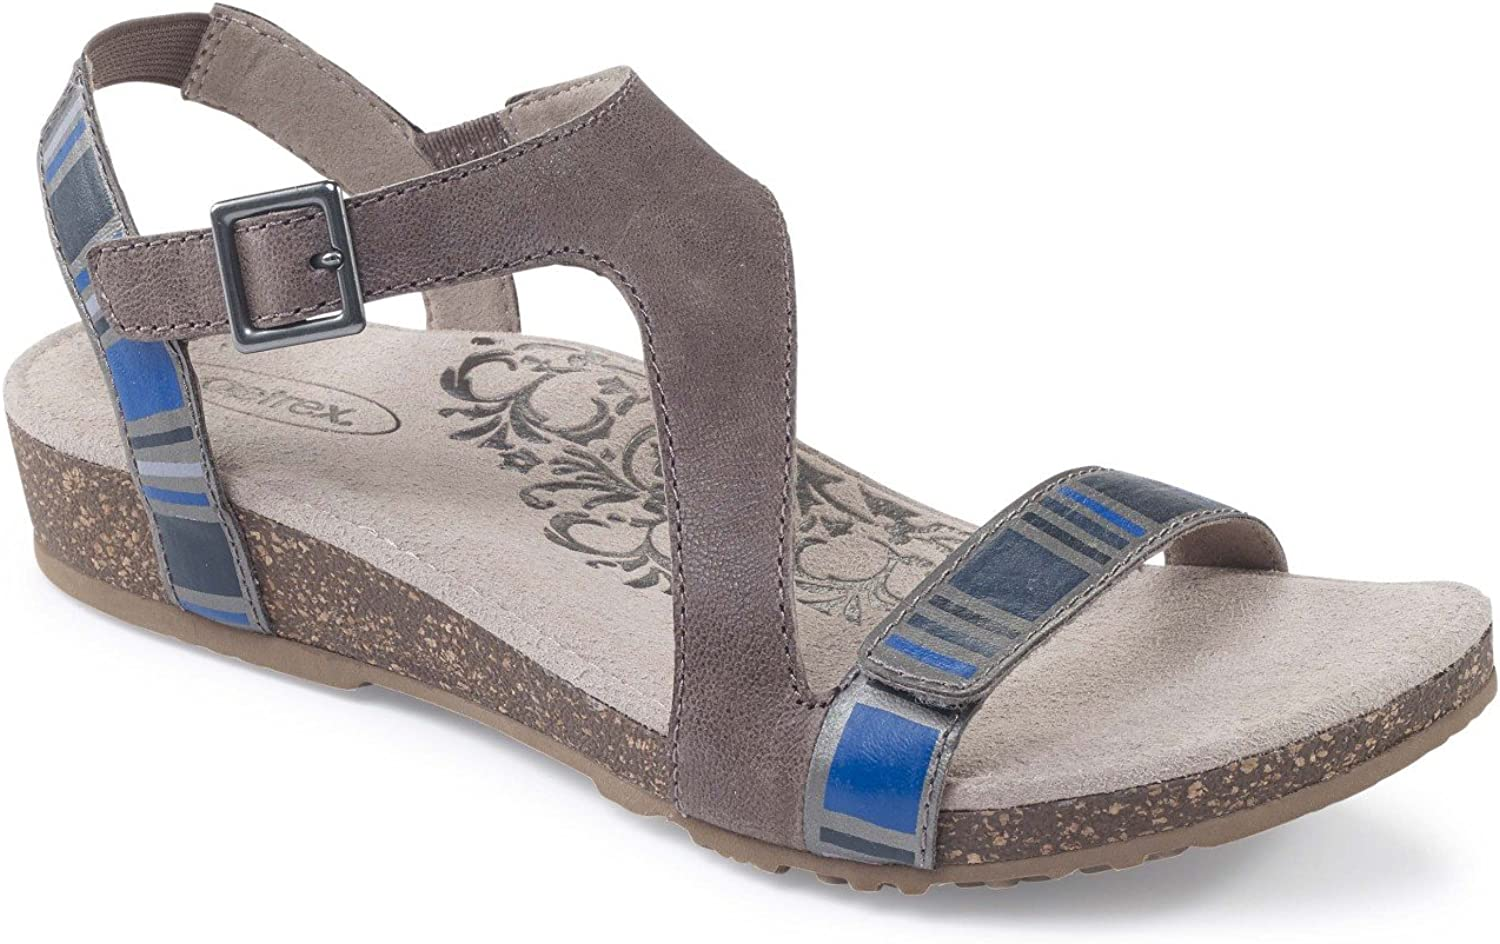 Aetrex Womens Jenny Leather Open Toe Casual Platform Sandals